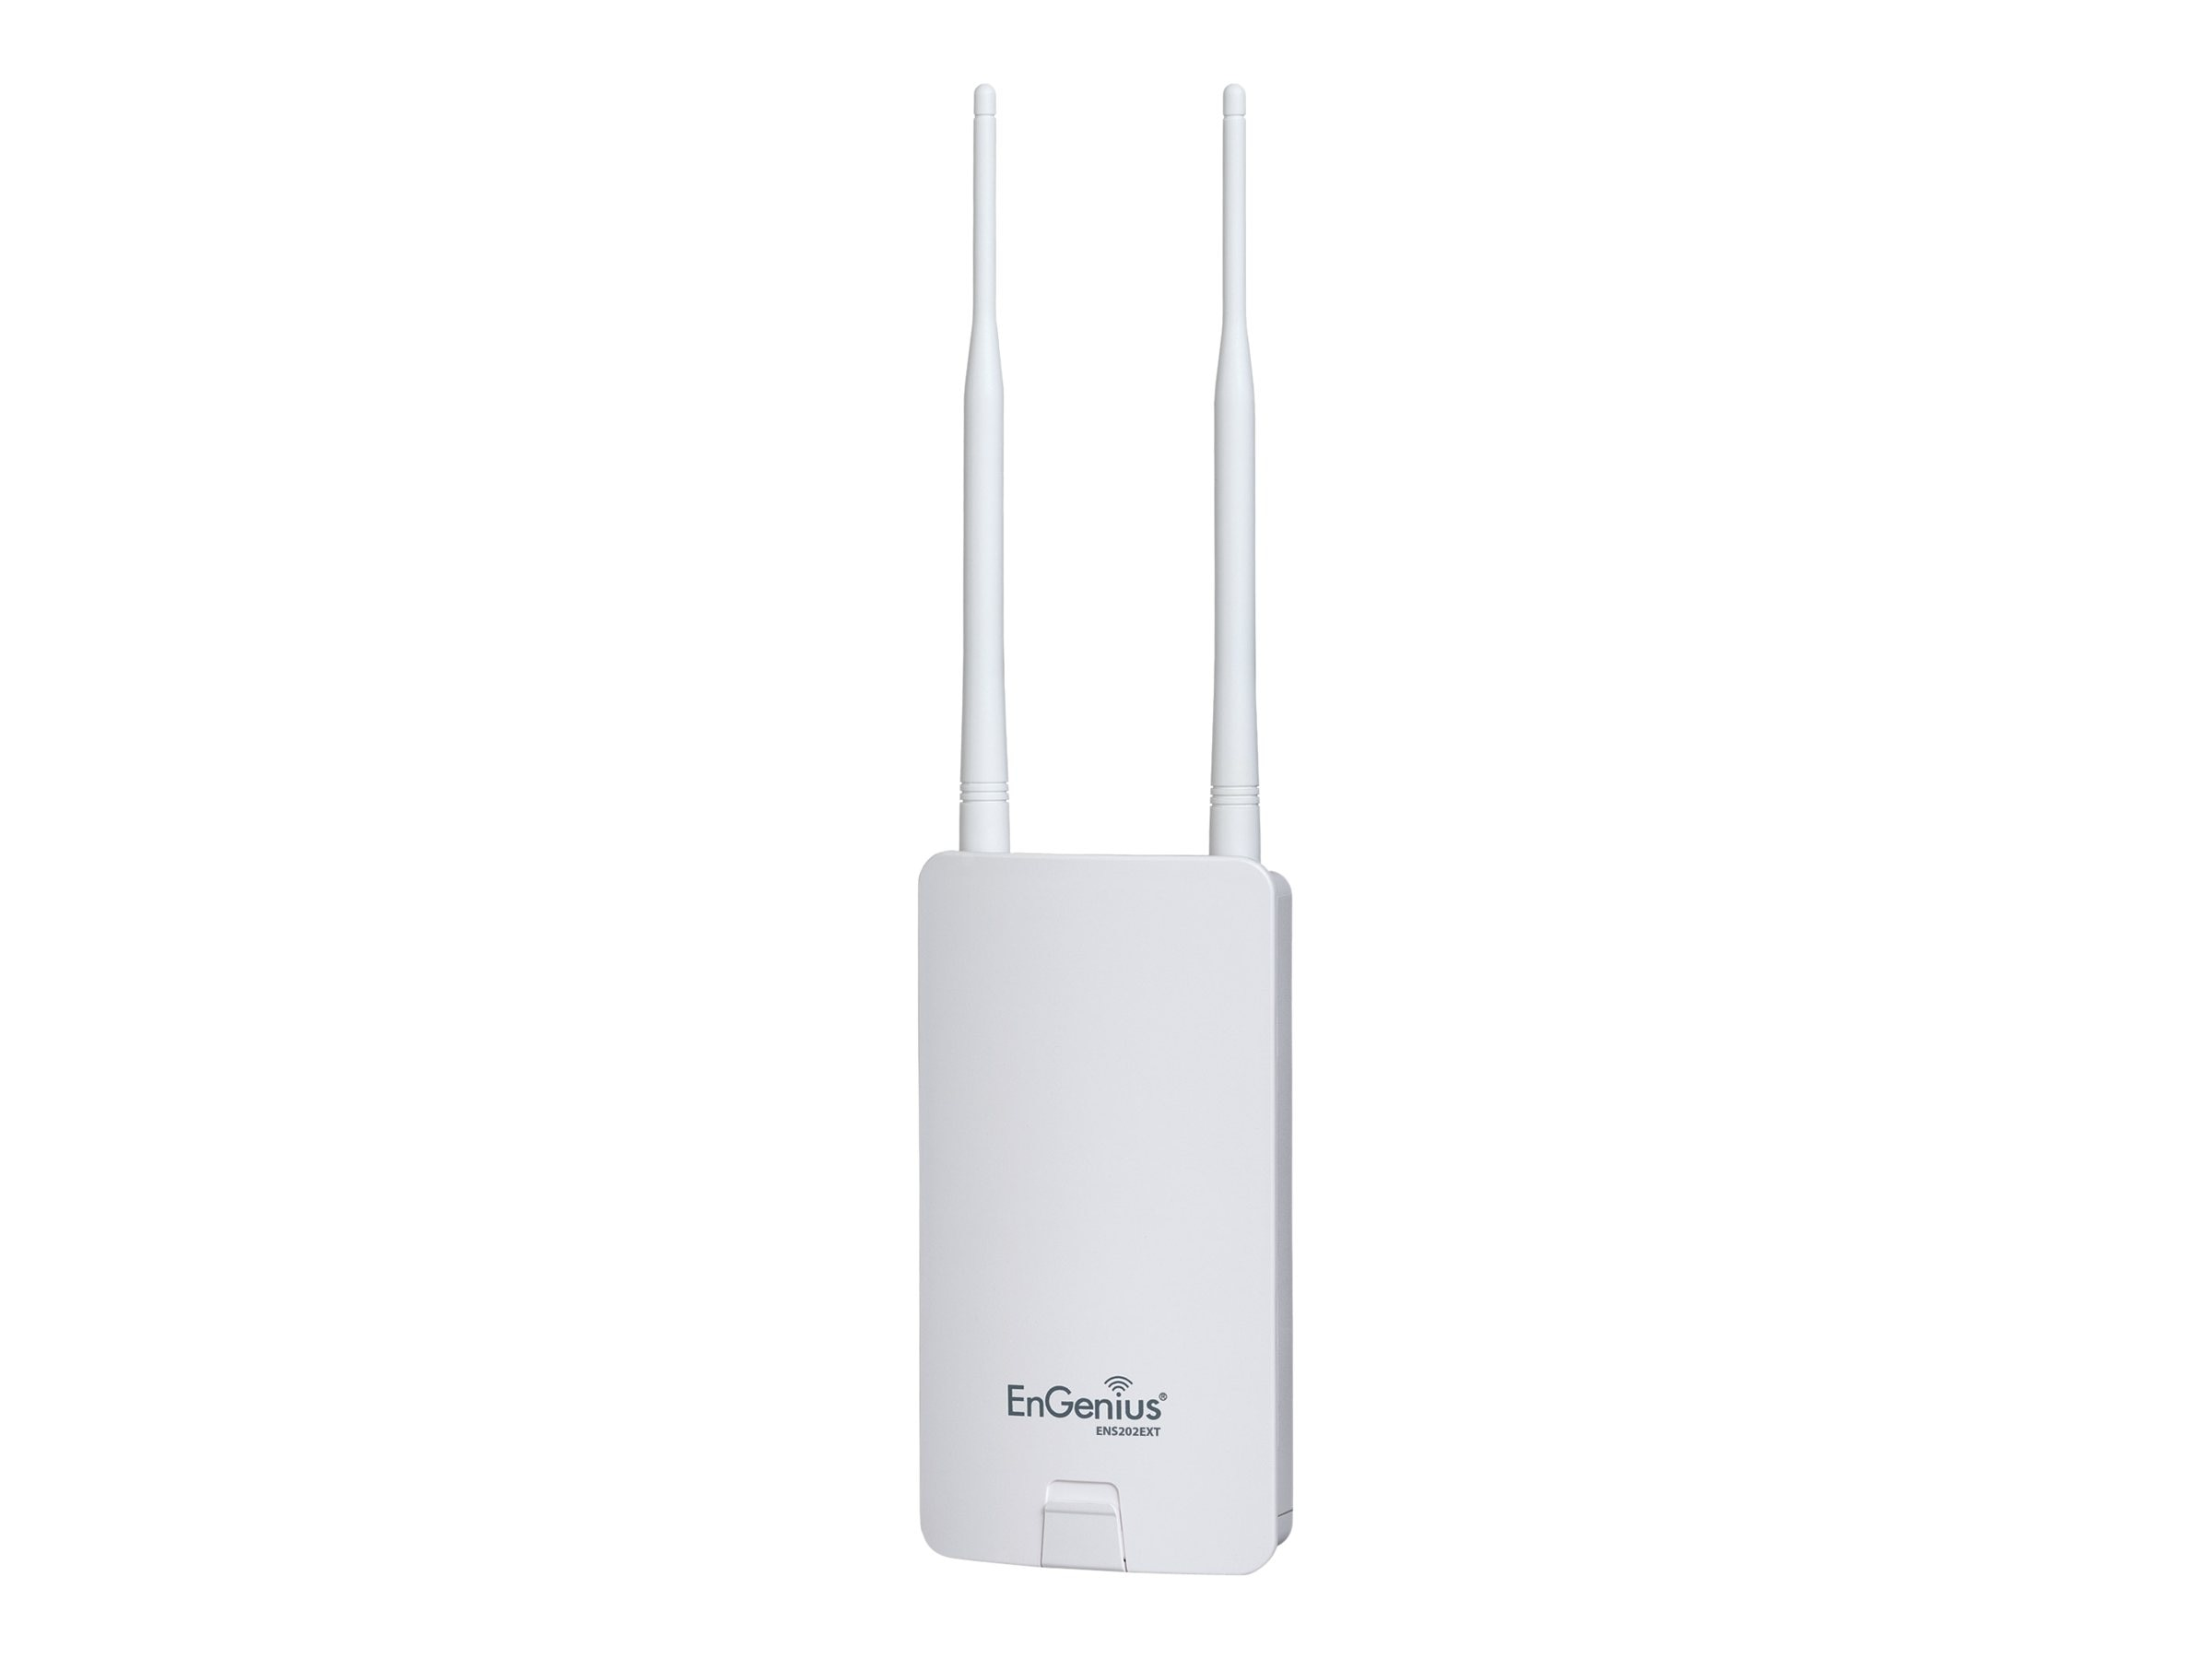 Engenius Technologies 2.4GHZ High-powered, long-range Wireless N300 Outdoor Access Point